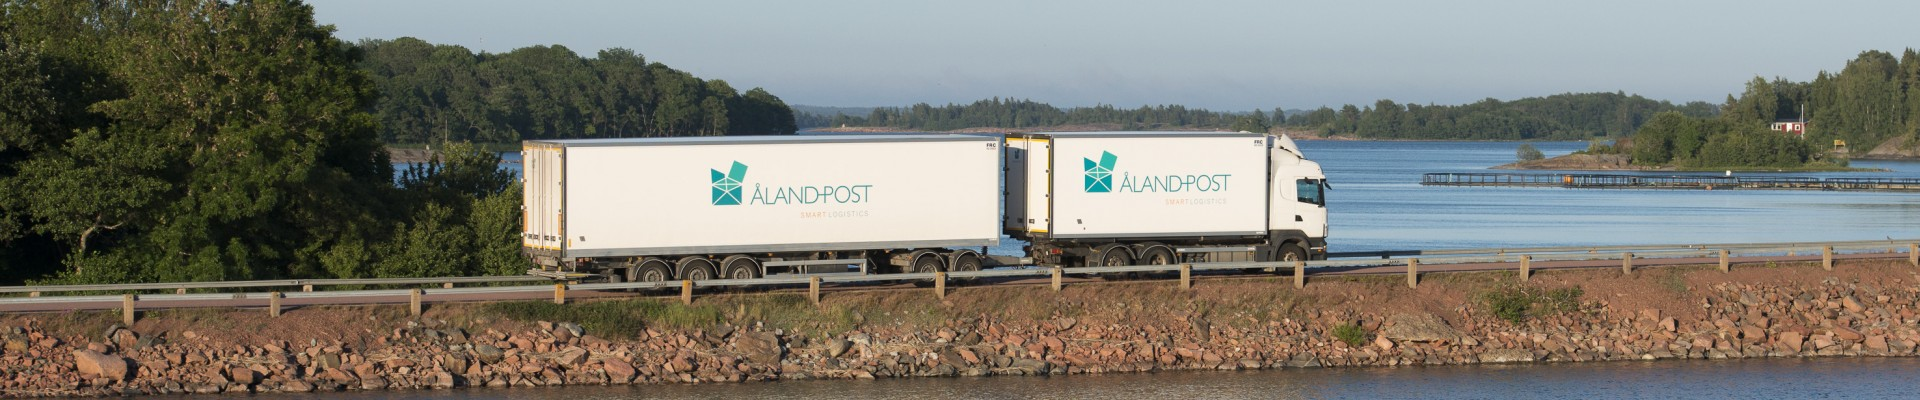 Åland Post vehicle